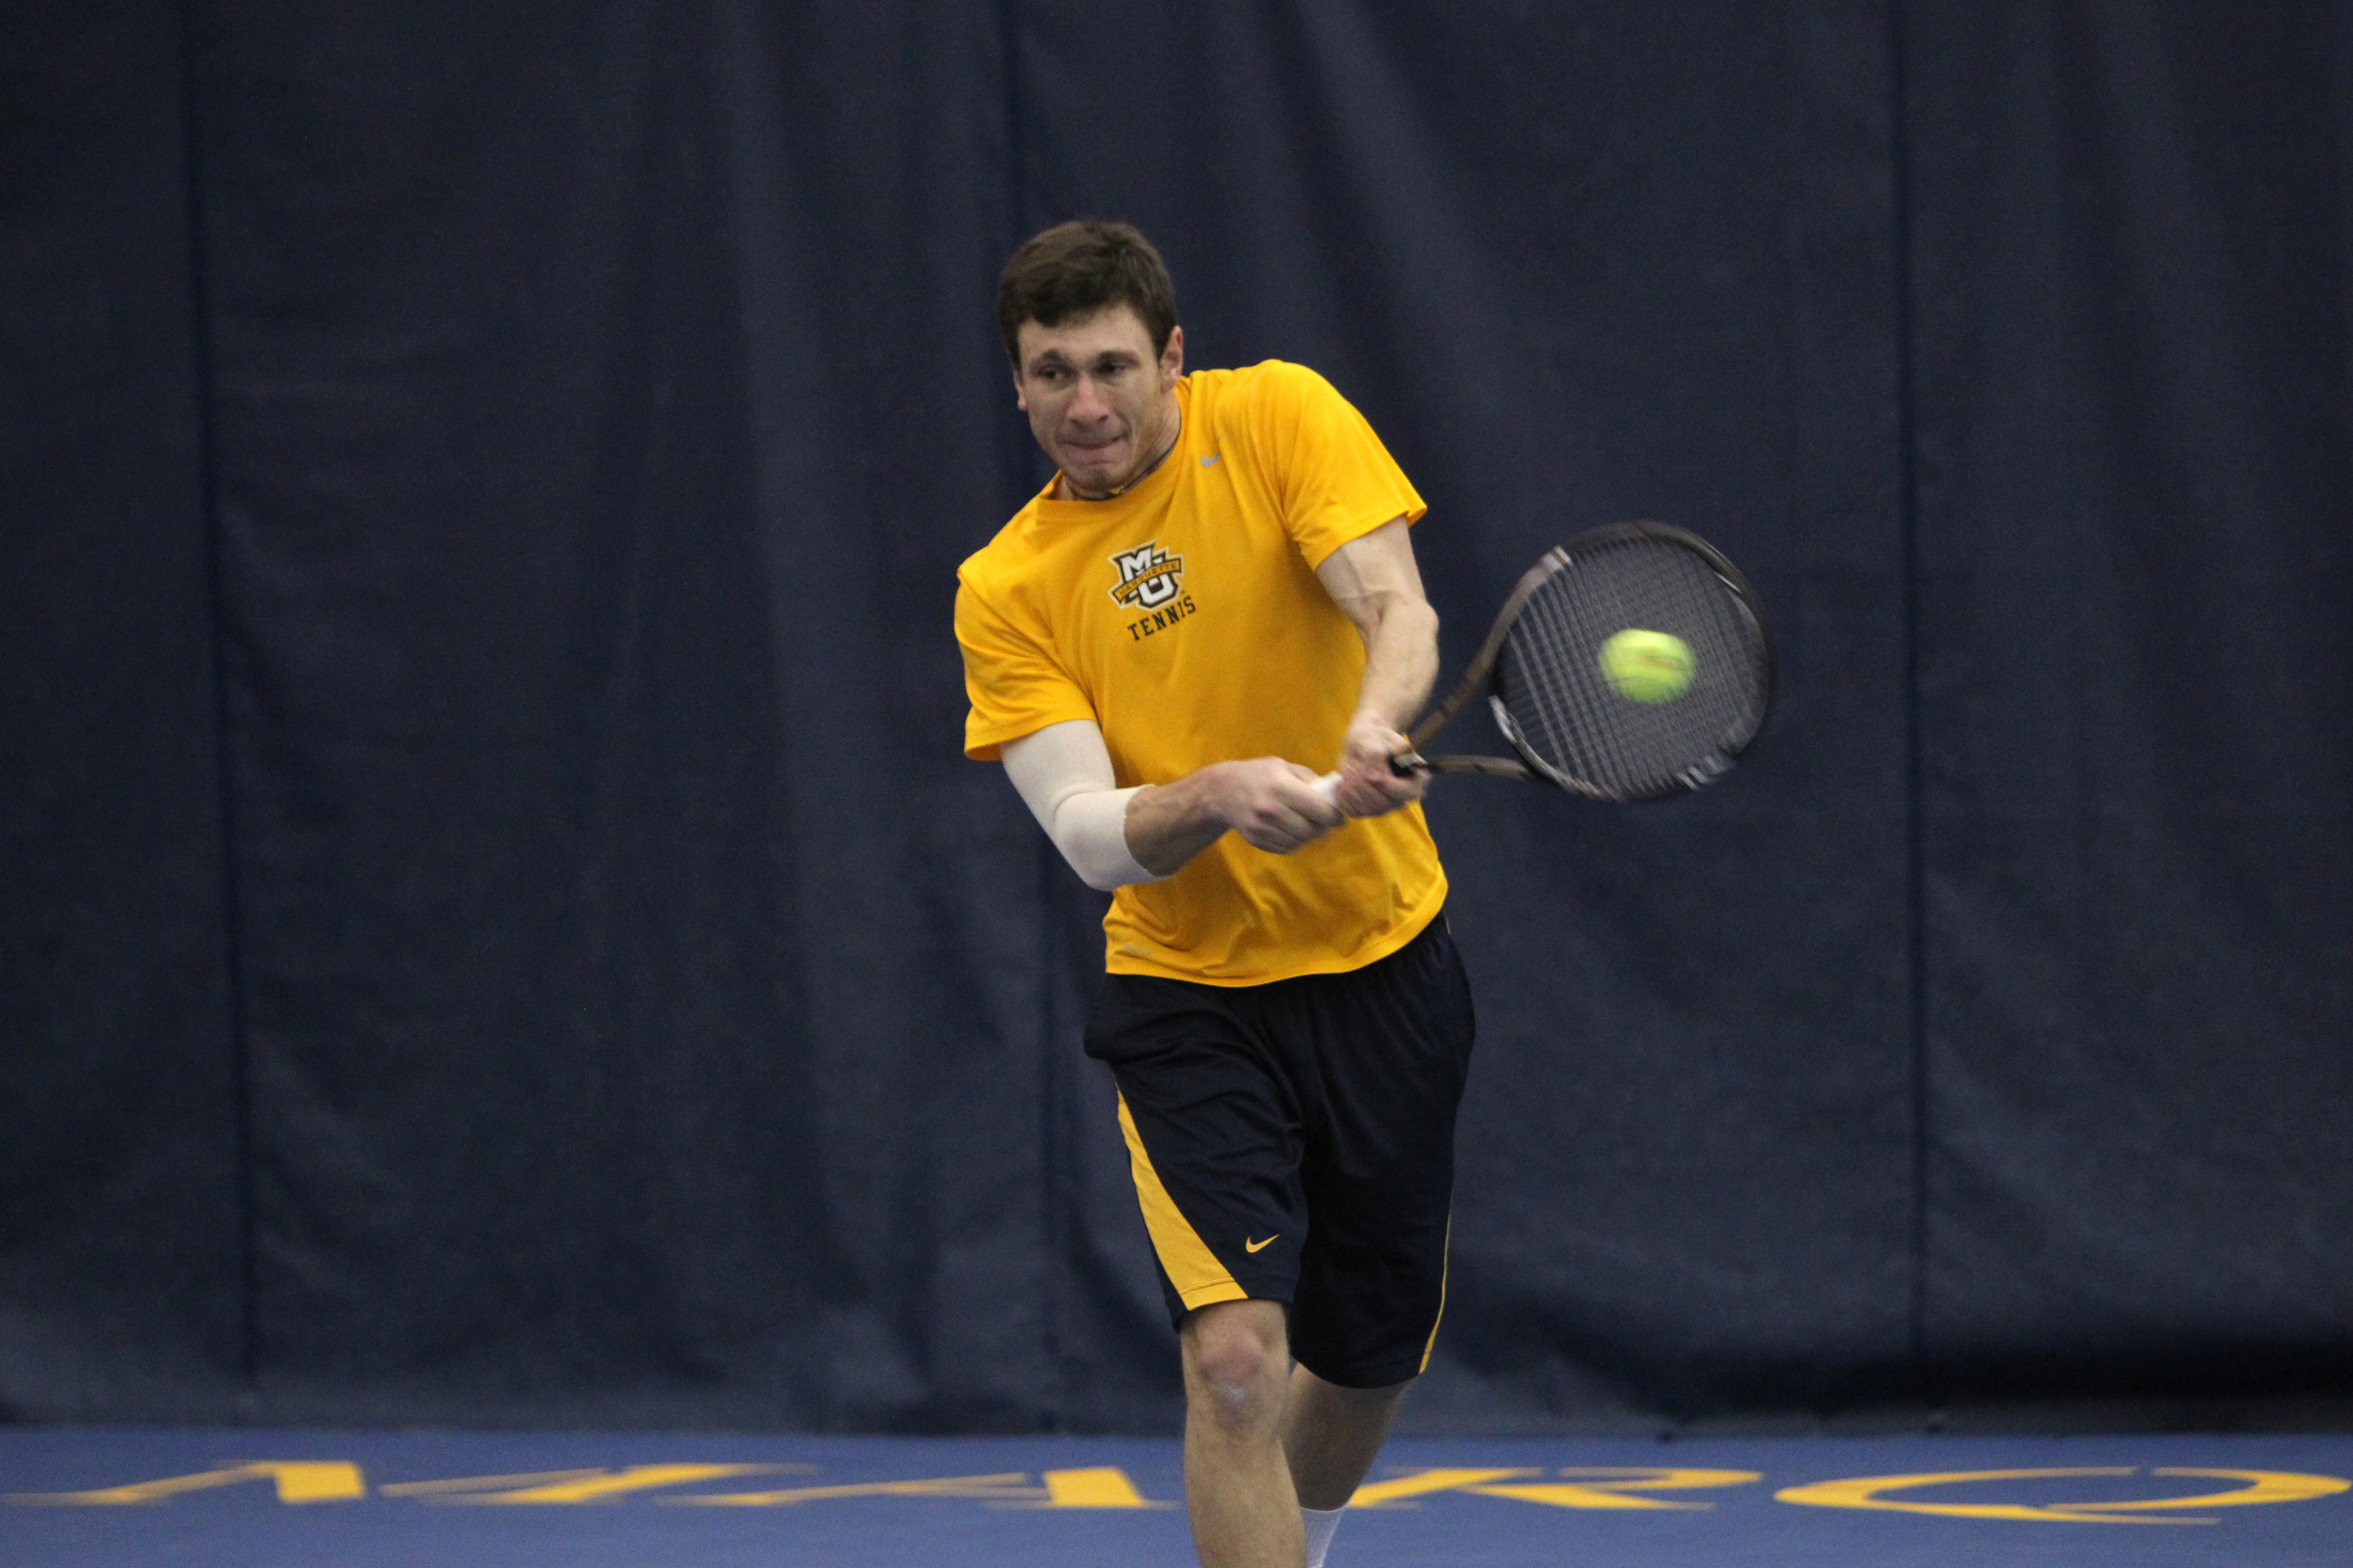 Freshman Gleb Sklyr concluded the week with a win.